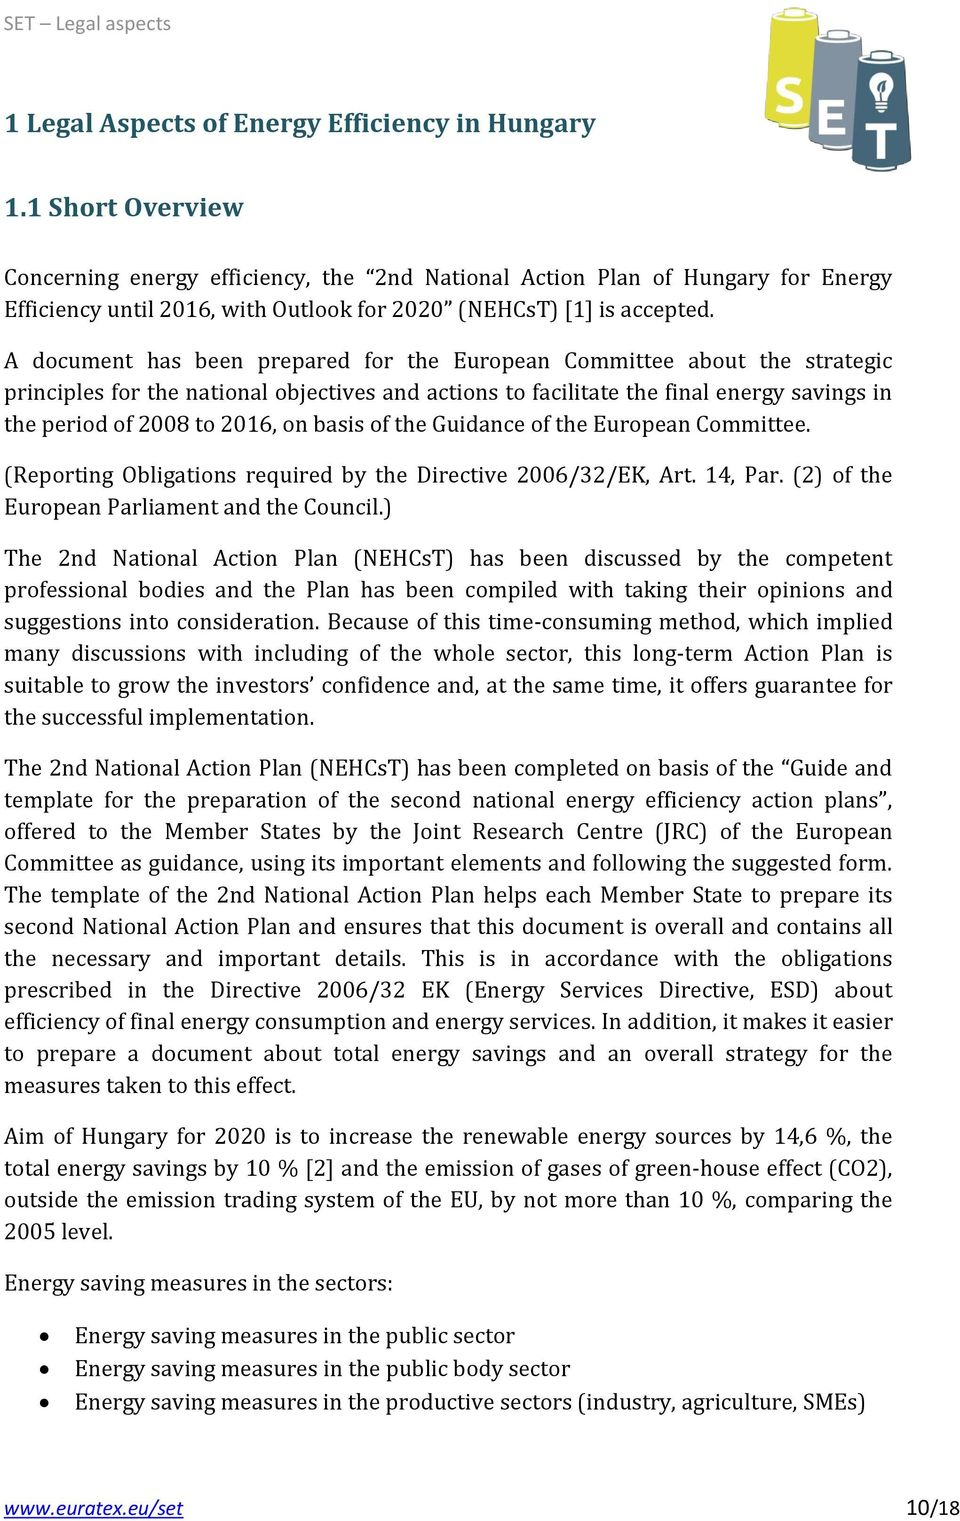 A document has been prepared for the European Committee about the strategic principles for the national objectives and actions to facilitate the final energy savings in the period of 2008 to 2016, on